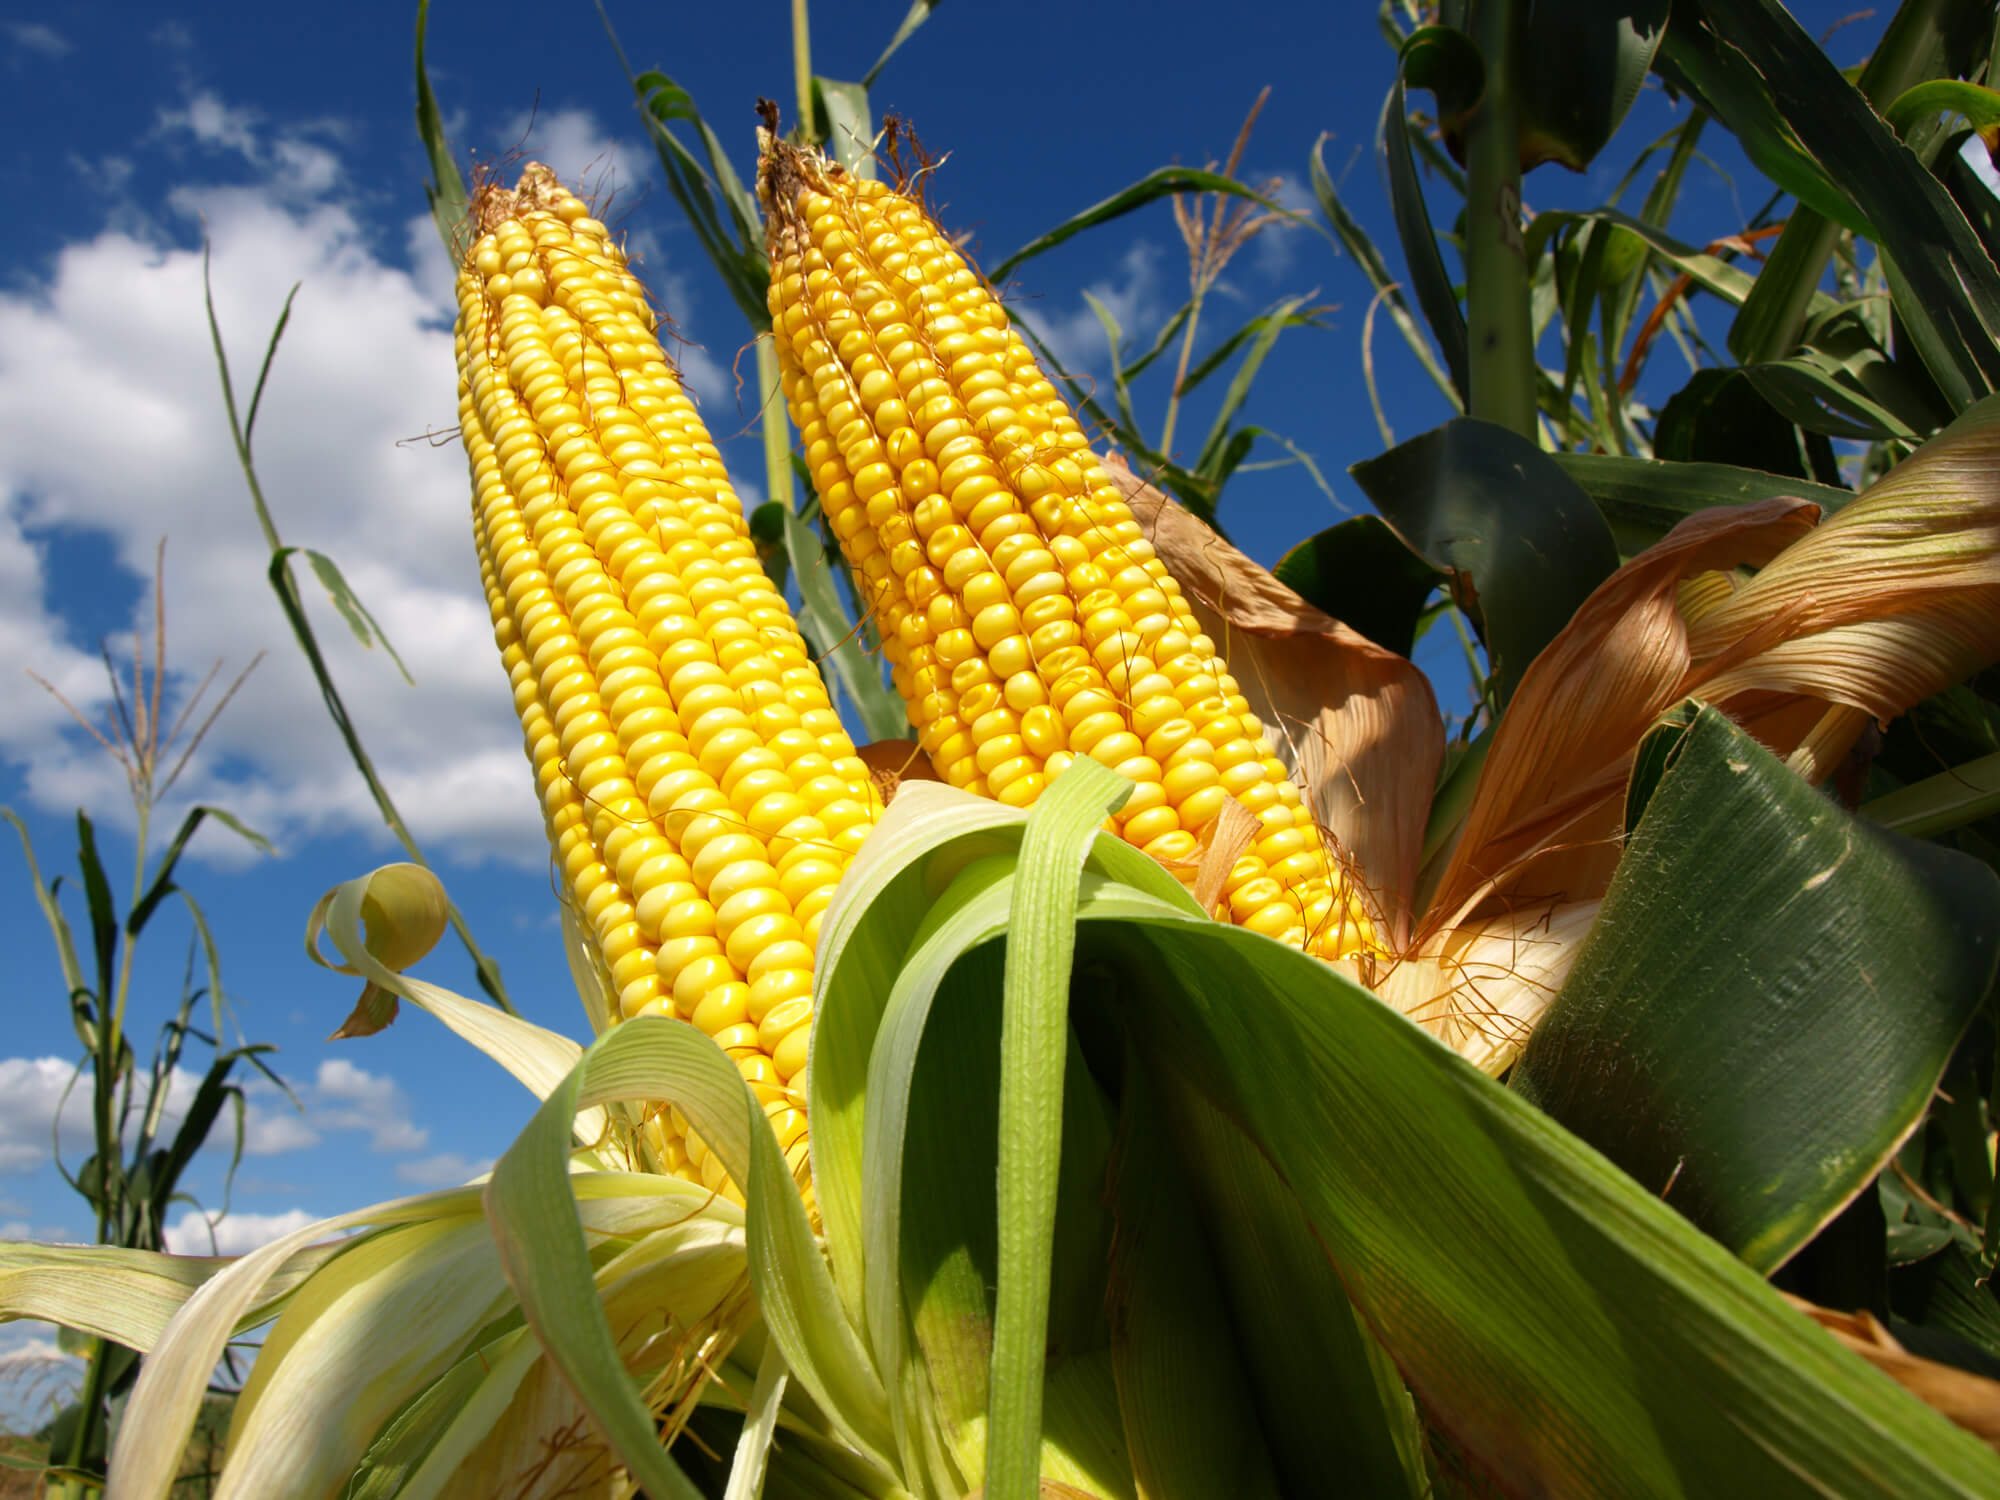 Maize Wallpaper: To Make Farming More Sustainable, Don't Mimic Nature